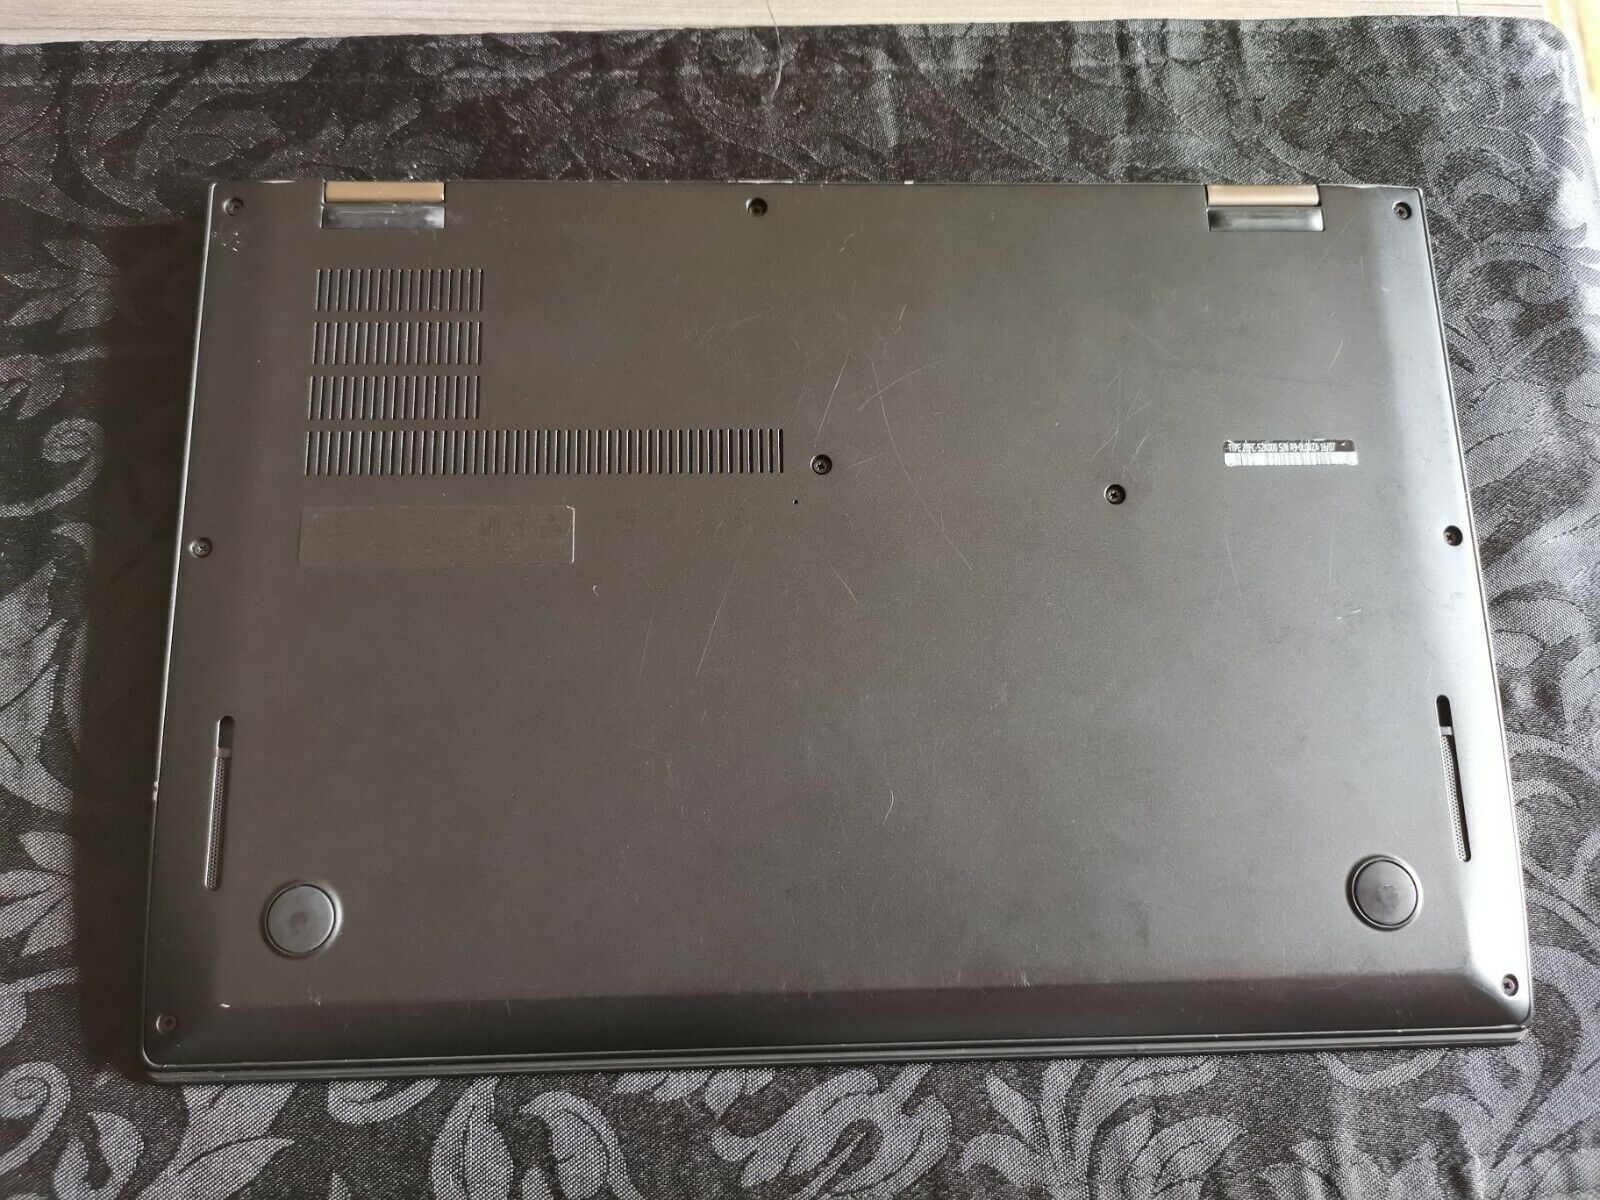 Pc ordinateur lenovo thinkpad x1 gen 4 carbon i7 6600u ssd 256 go ram 8 go (9)